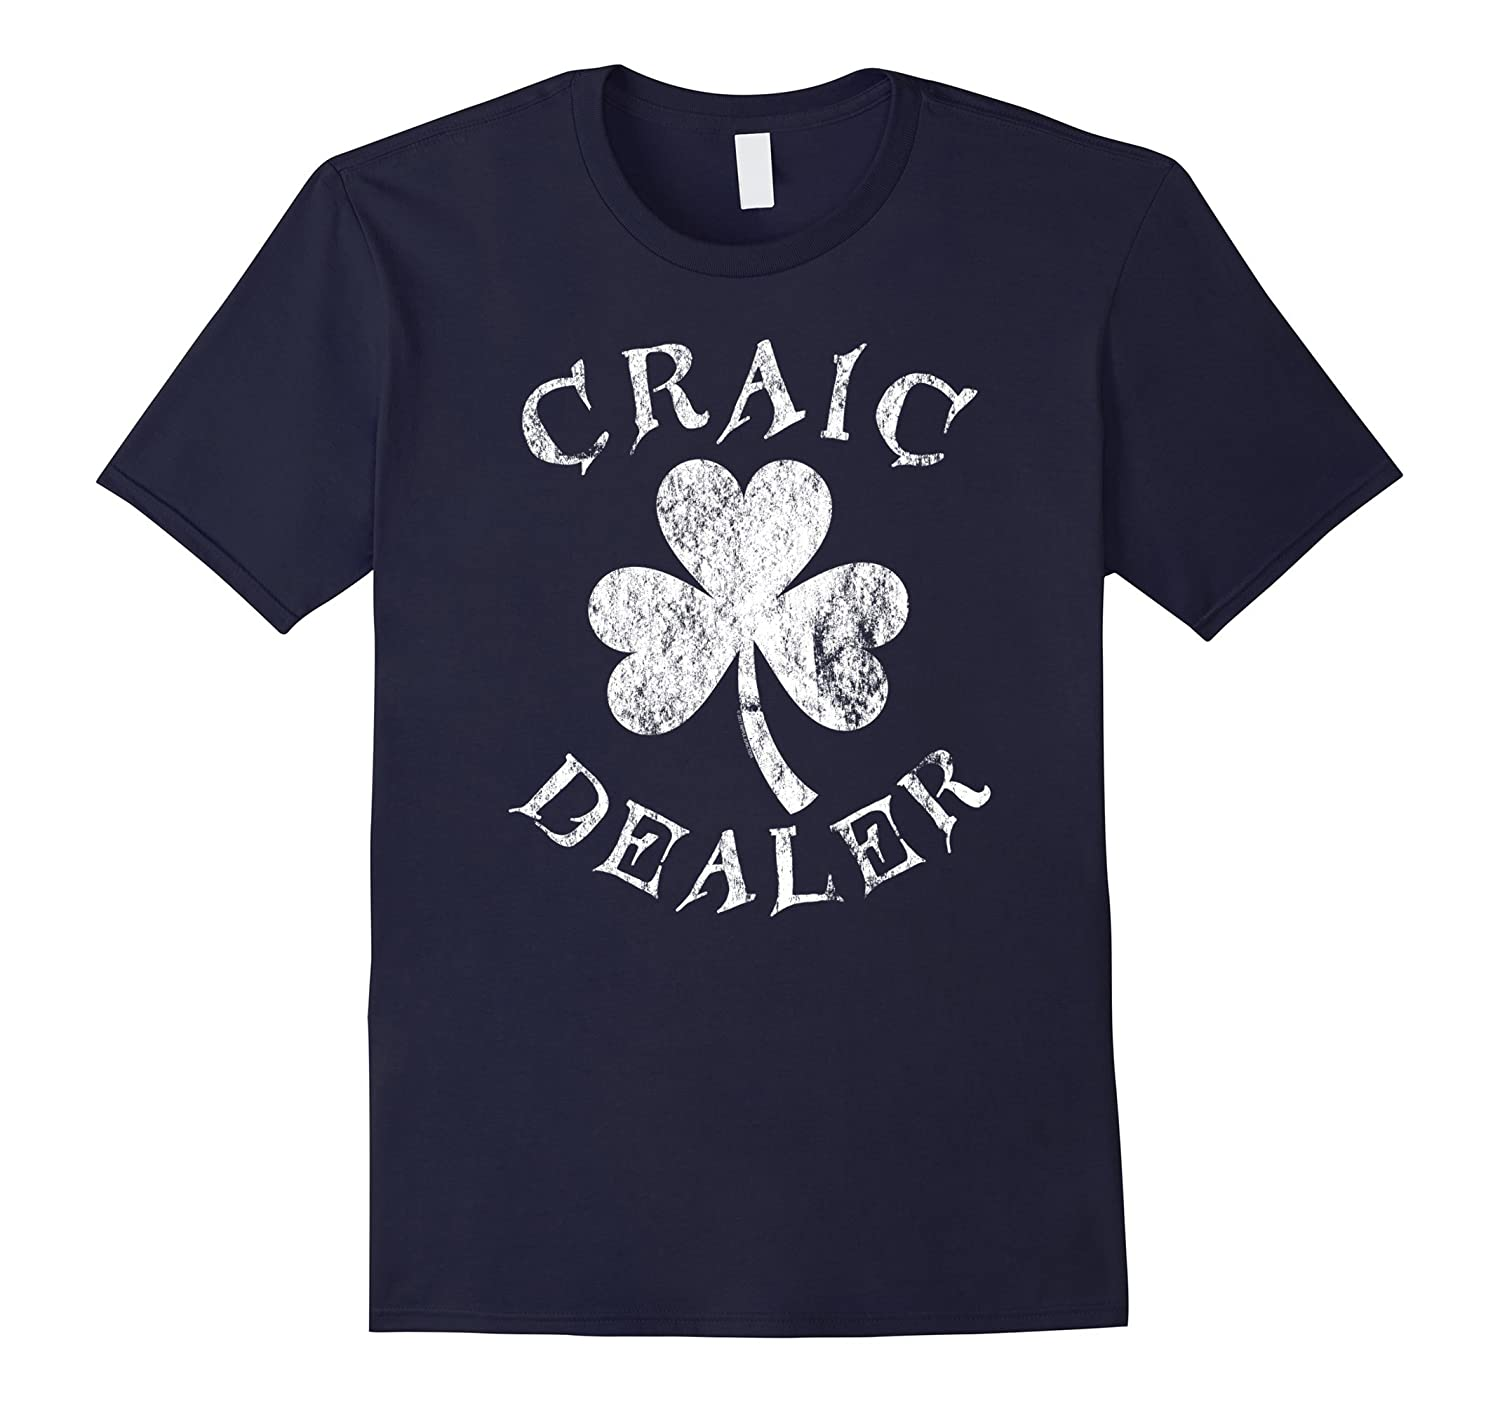 Ripple Junction Craic Dealer-TD